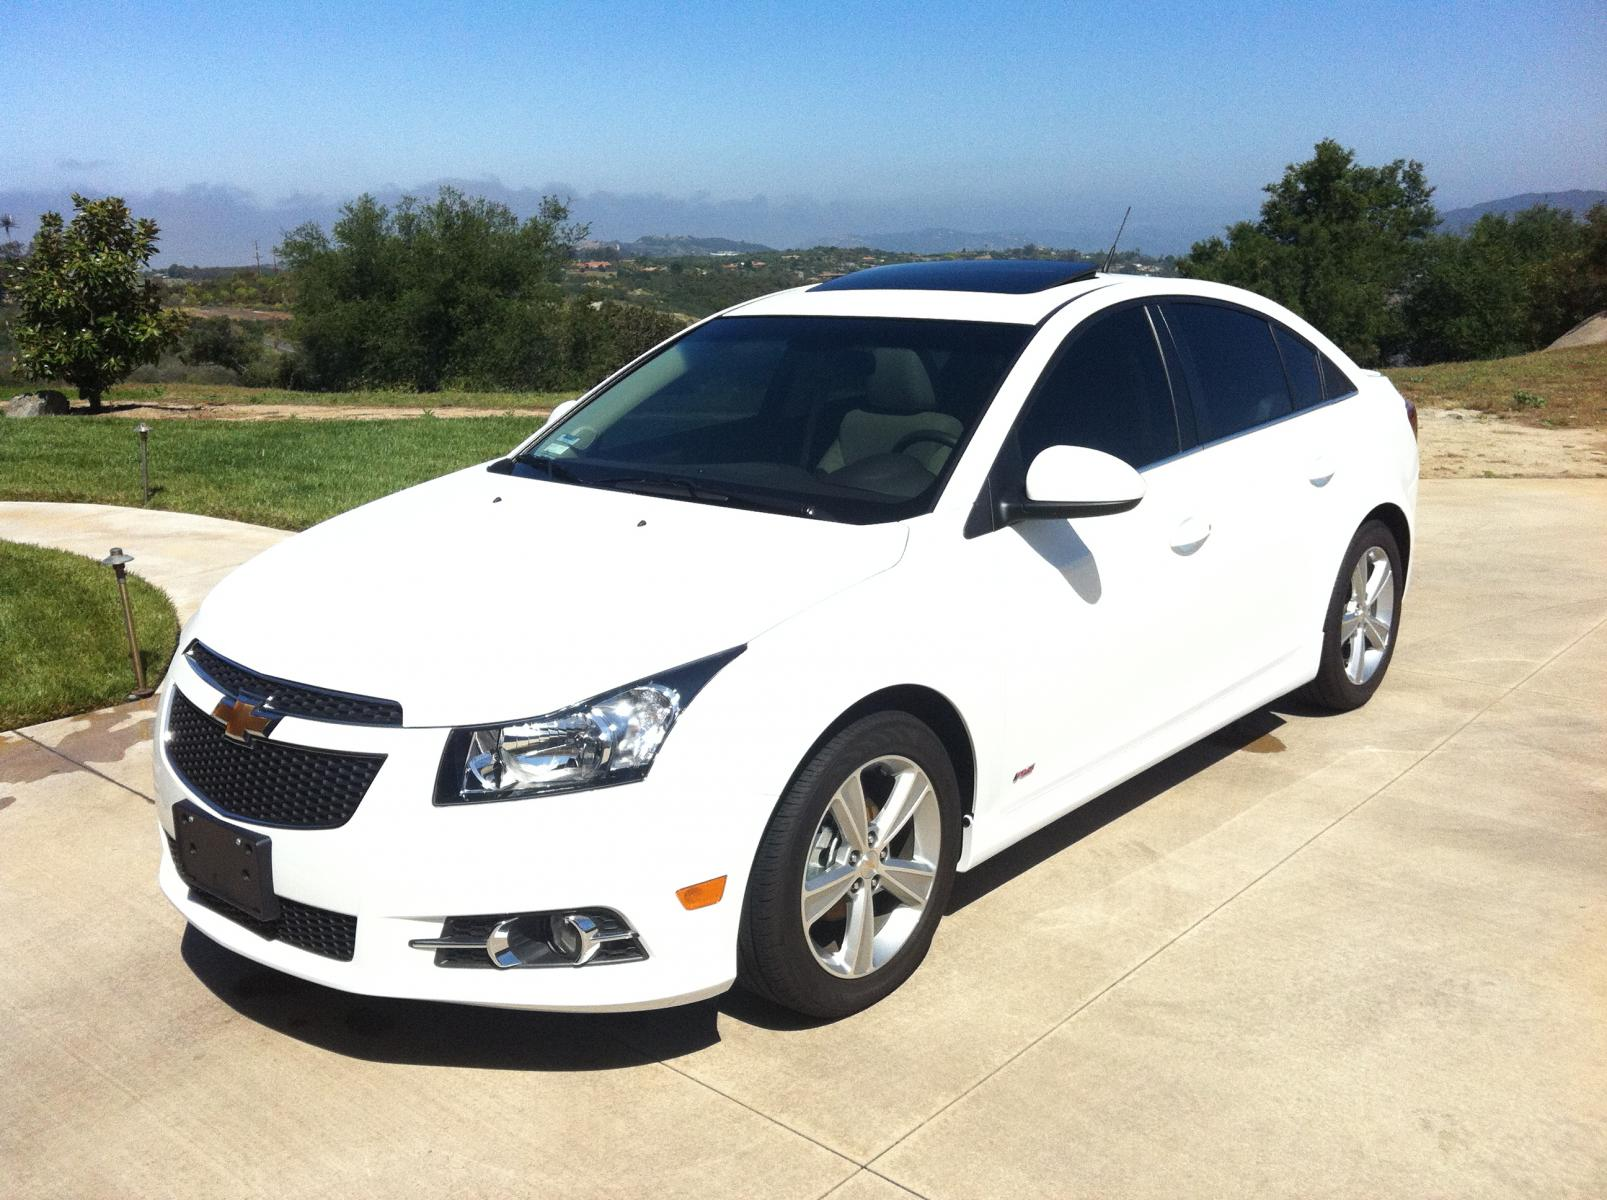 Feeler 2012 Cruze 2lt Rs 6mt Summit White In Ca Loaded